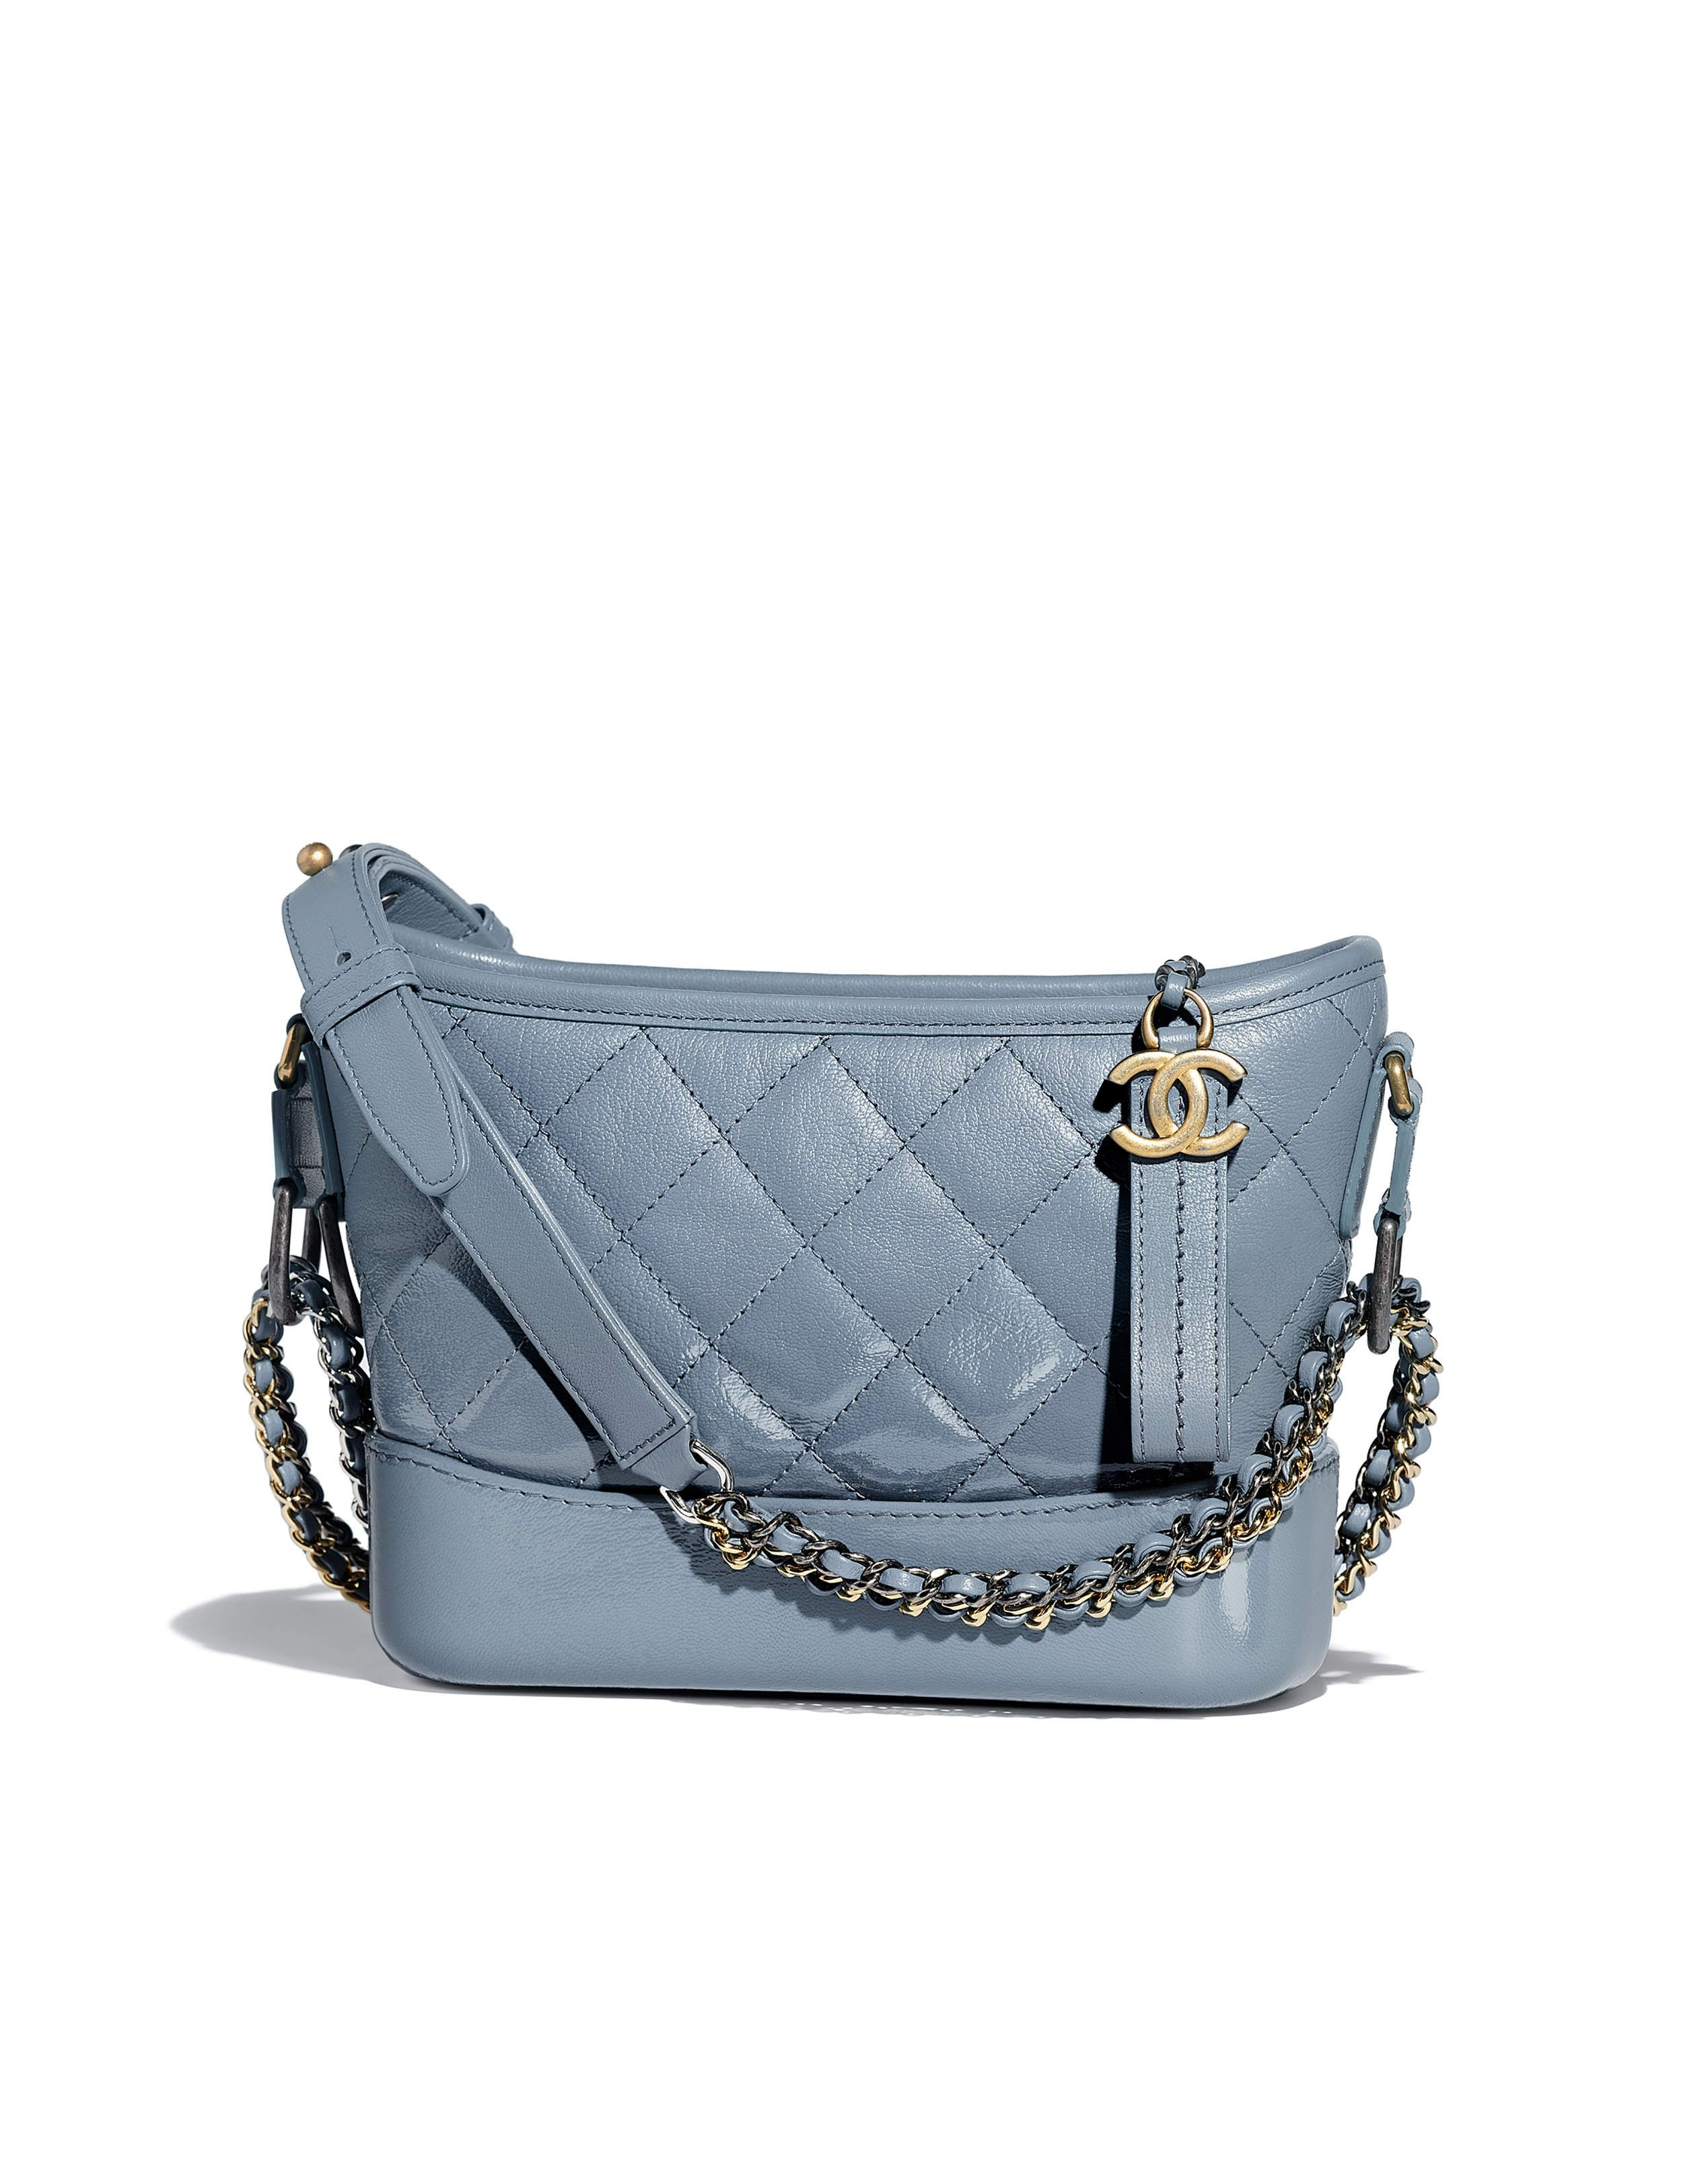 9cdbea585394 Chanel - SS2018 | Blue Chanel's Gabrielle small Hobo bag | BAGS ...